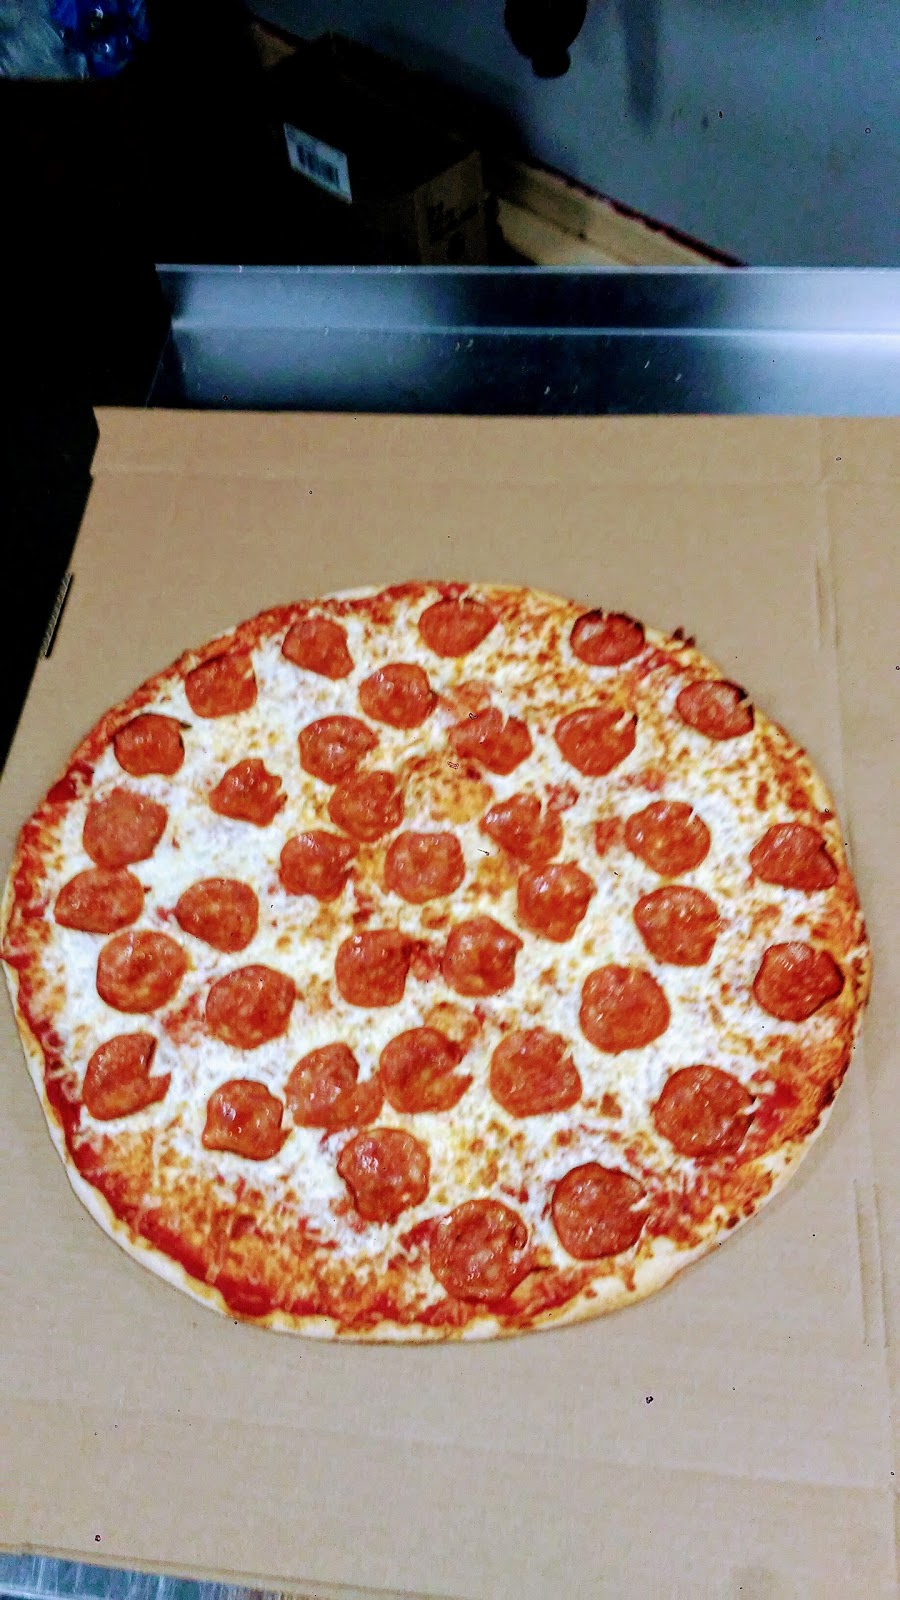 Garage Pizza | meal takeaway | 1282 York Rd, Niagara-on-the-Lake, ON L0S 1J0, Canada | 2895012772 OR +1 289-501-2772